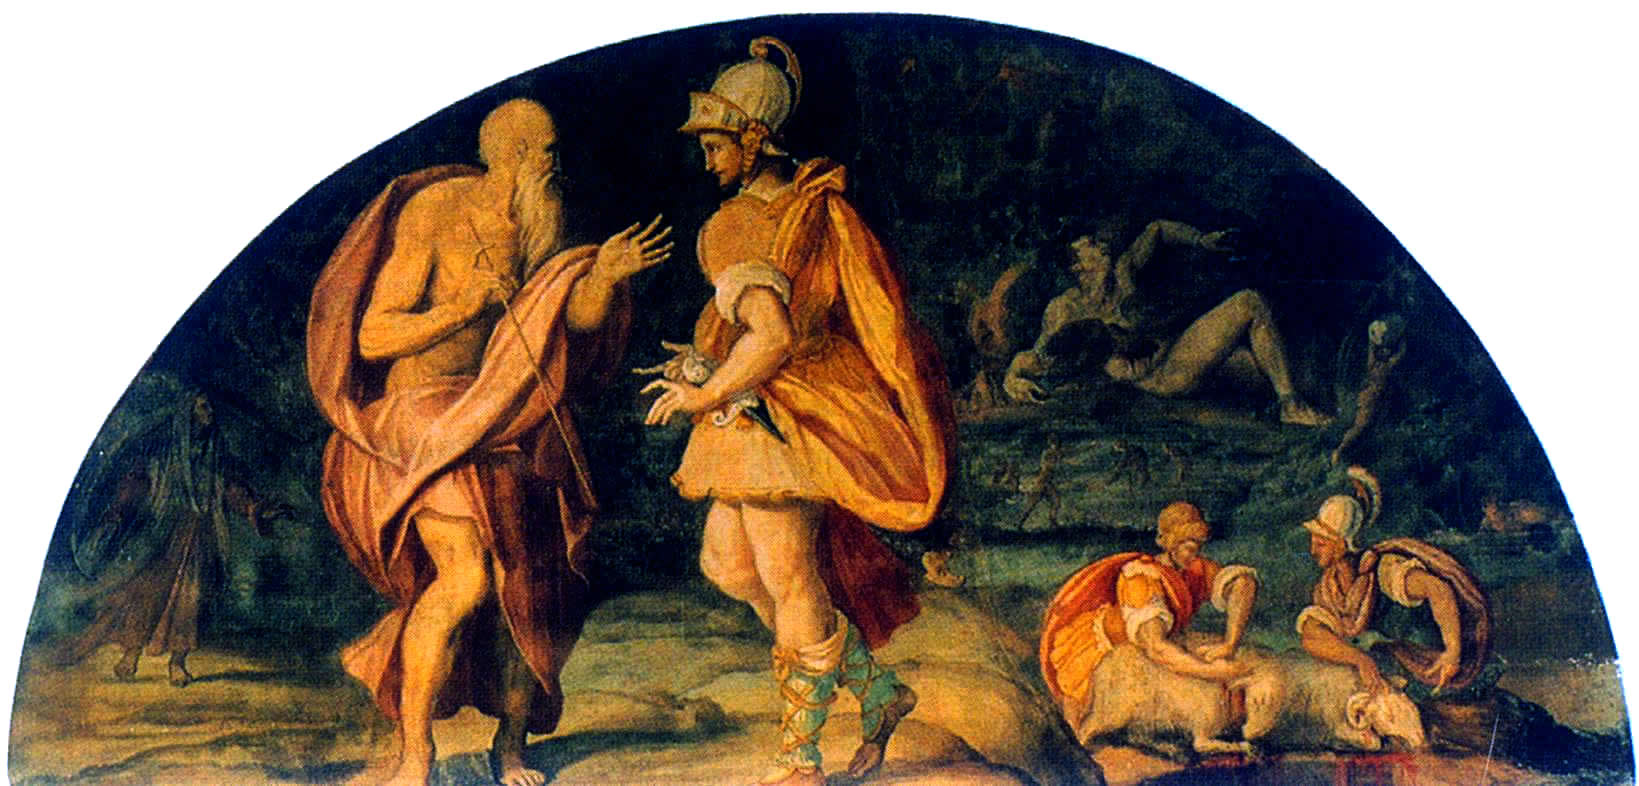 a comparison of oedipus and odysseus Opposing this belief, odysseus holds back emotions of rage and homesickness in order to complete the task at hand homer, living in greek society, understood that his people thought more about the problem before coming to a quick conclusion and then acting on it impulsively.